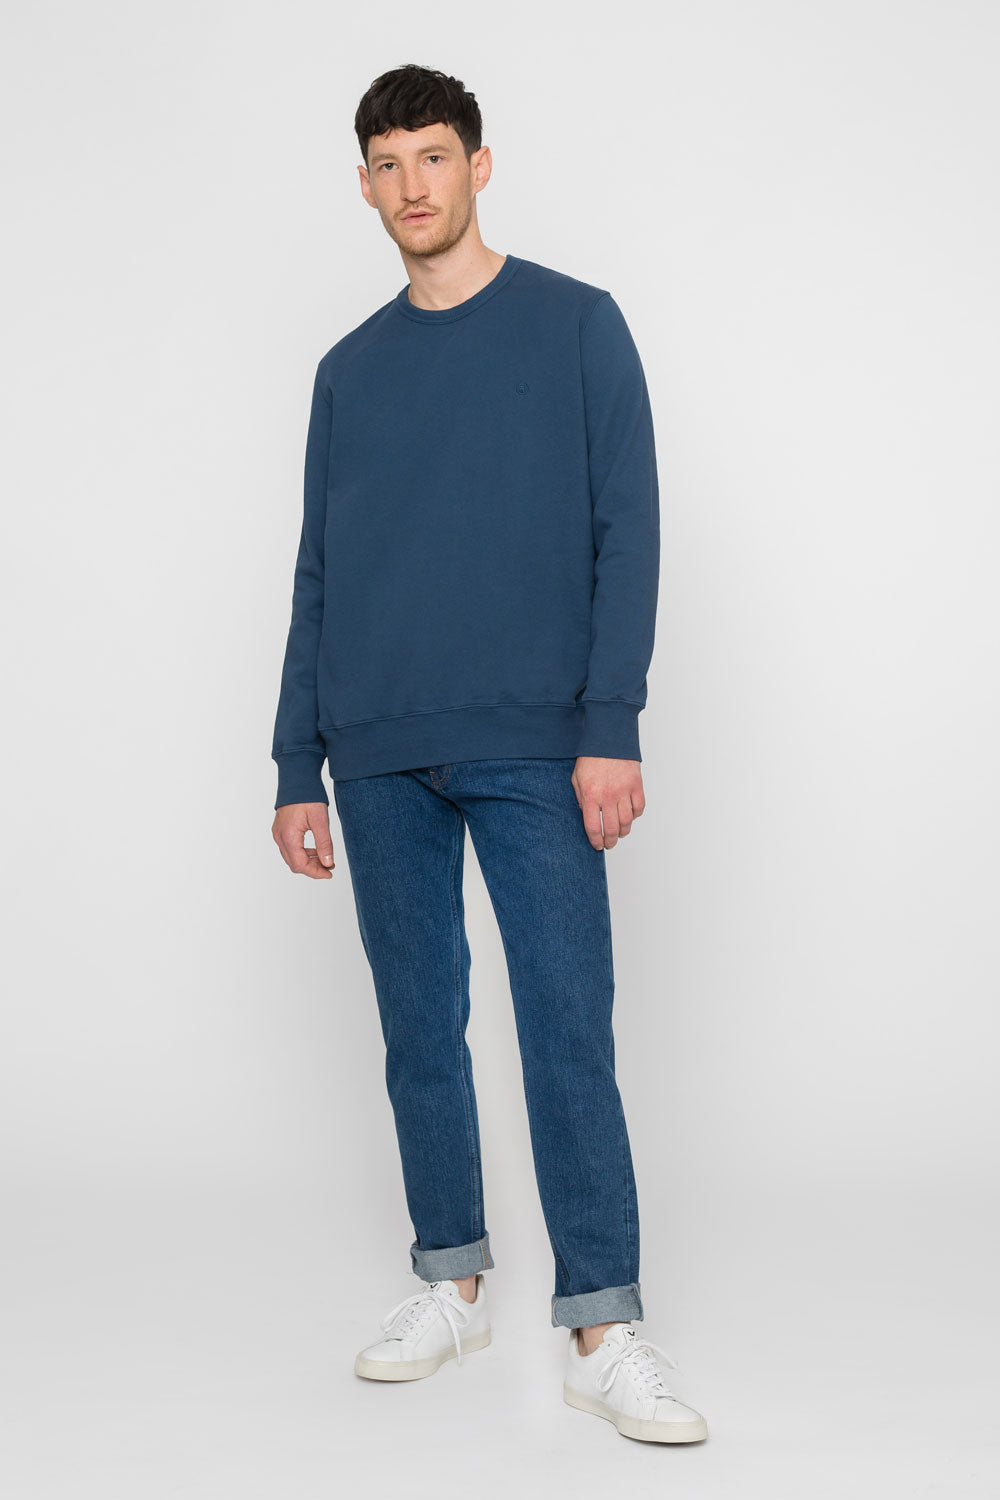 'Rights' Bio Sweatshirt Blau